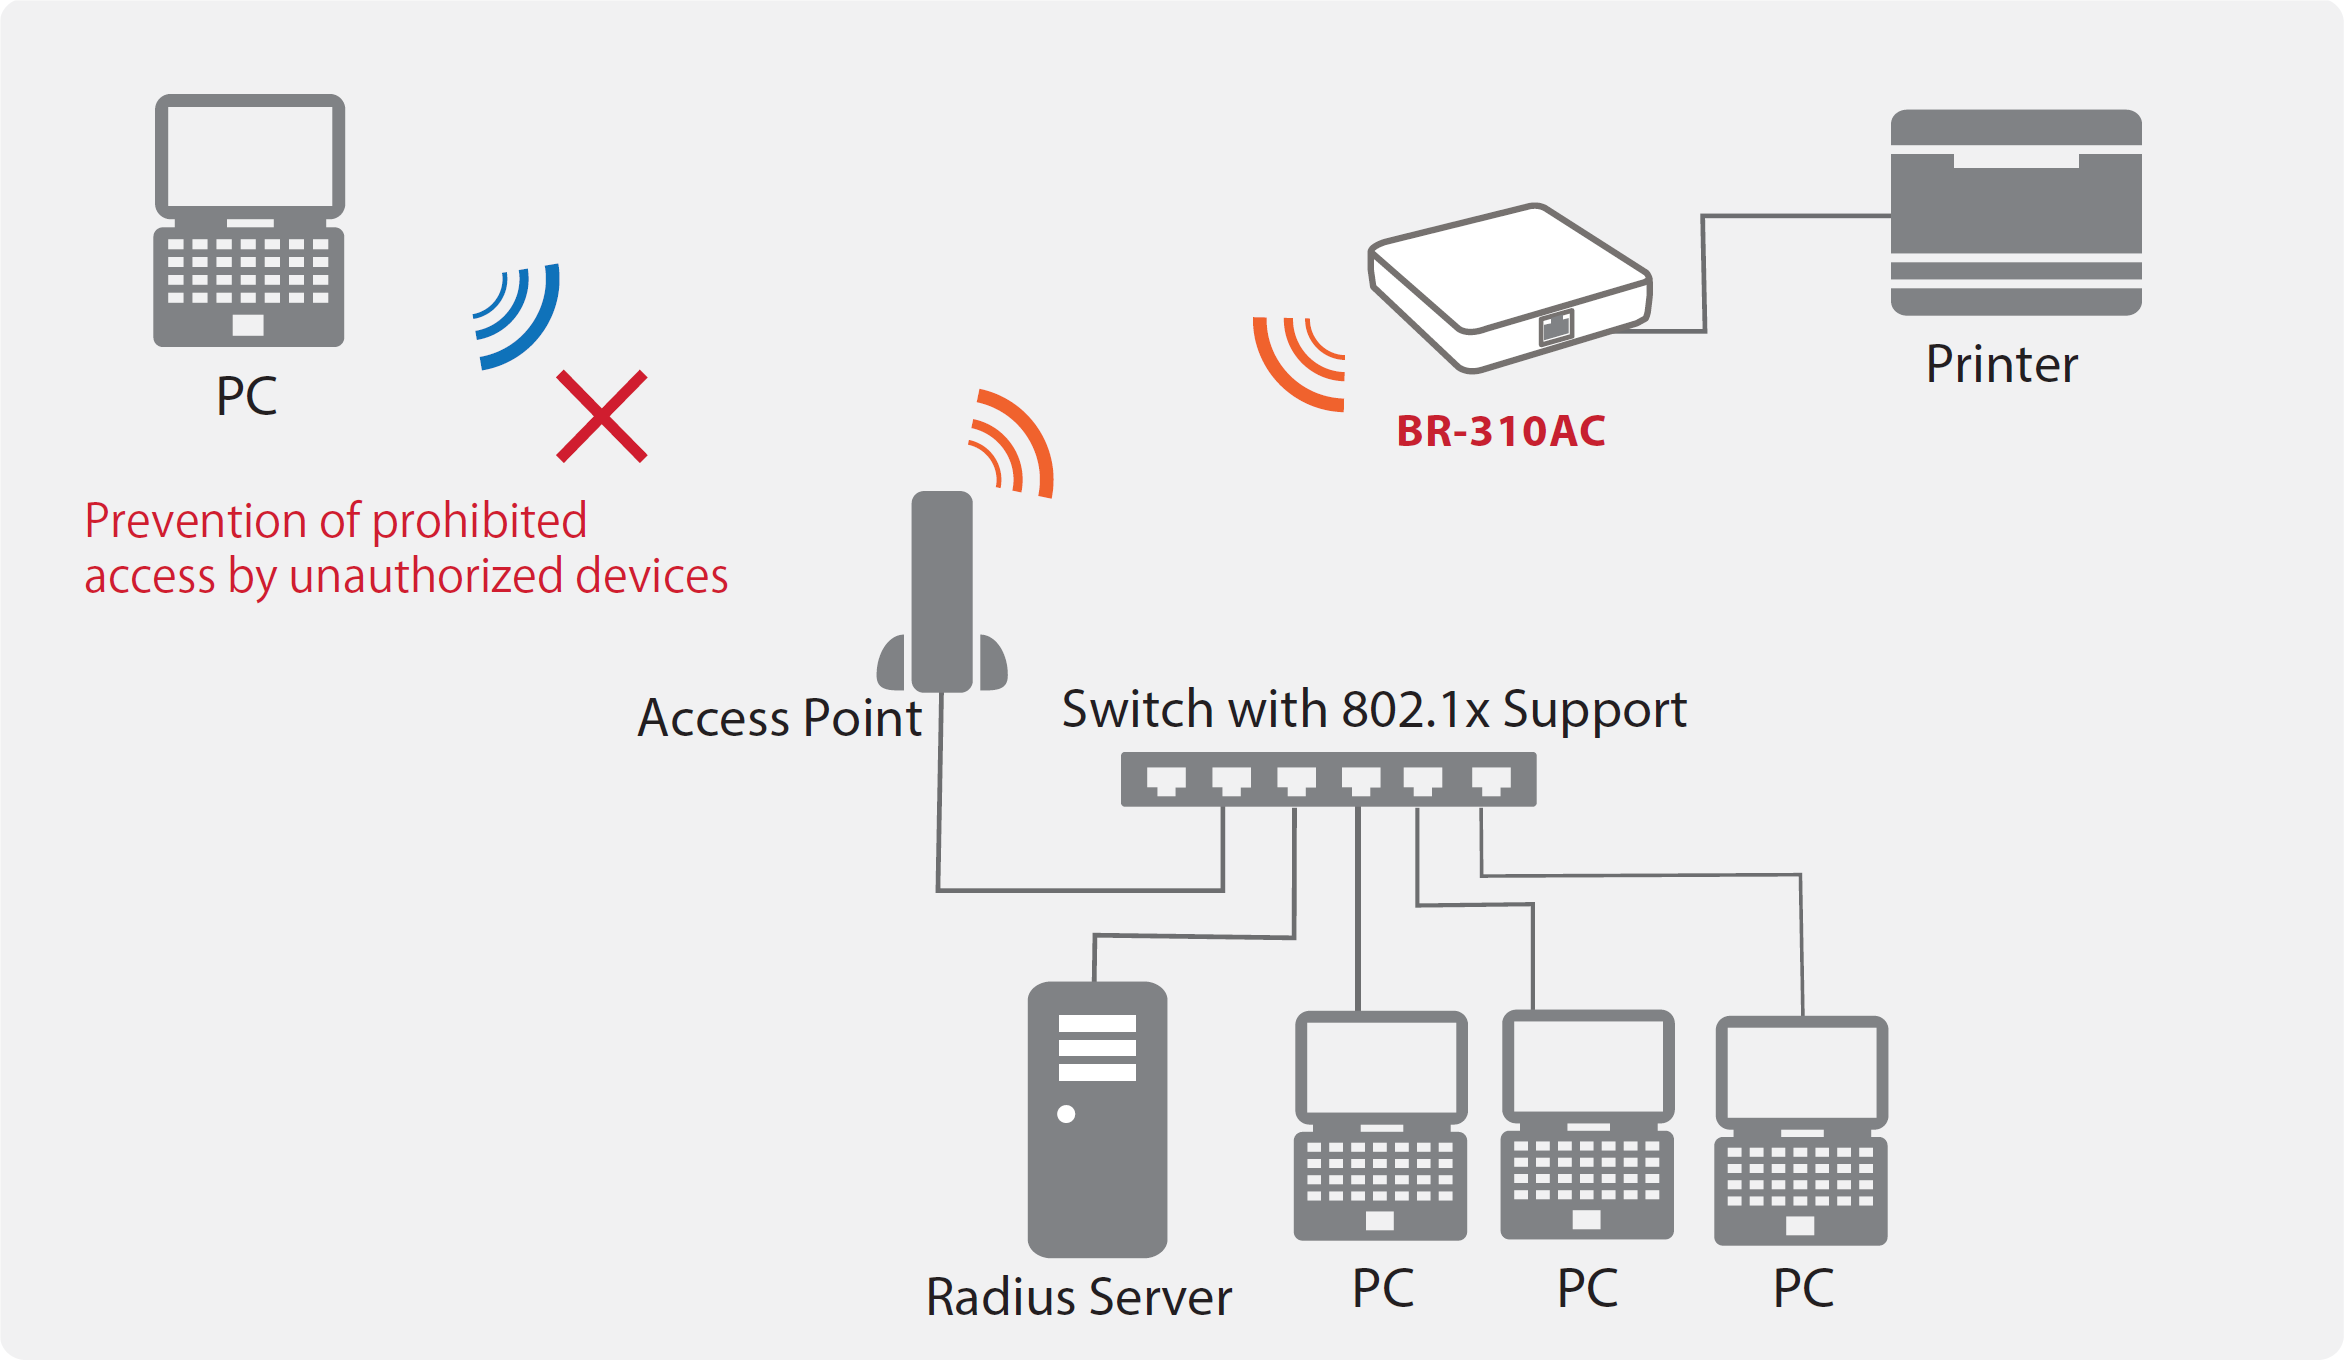 BR-310AC Enterprise Security Image